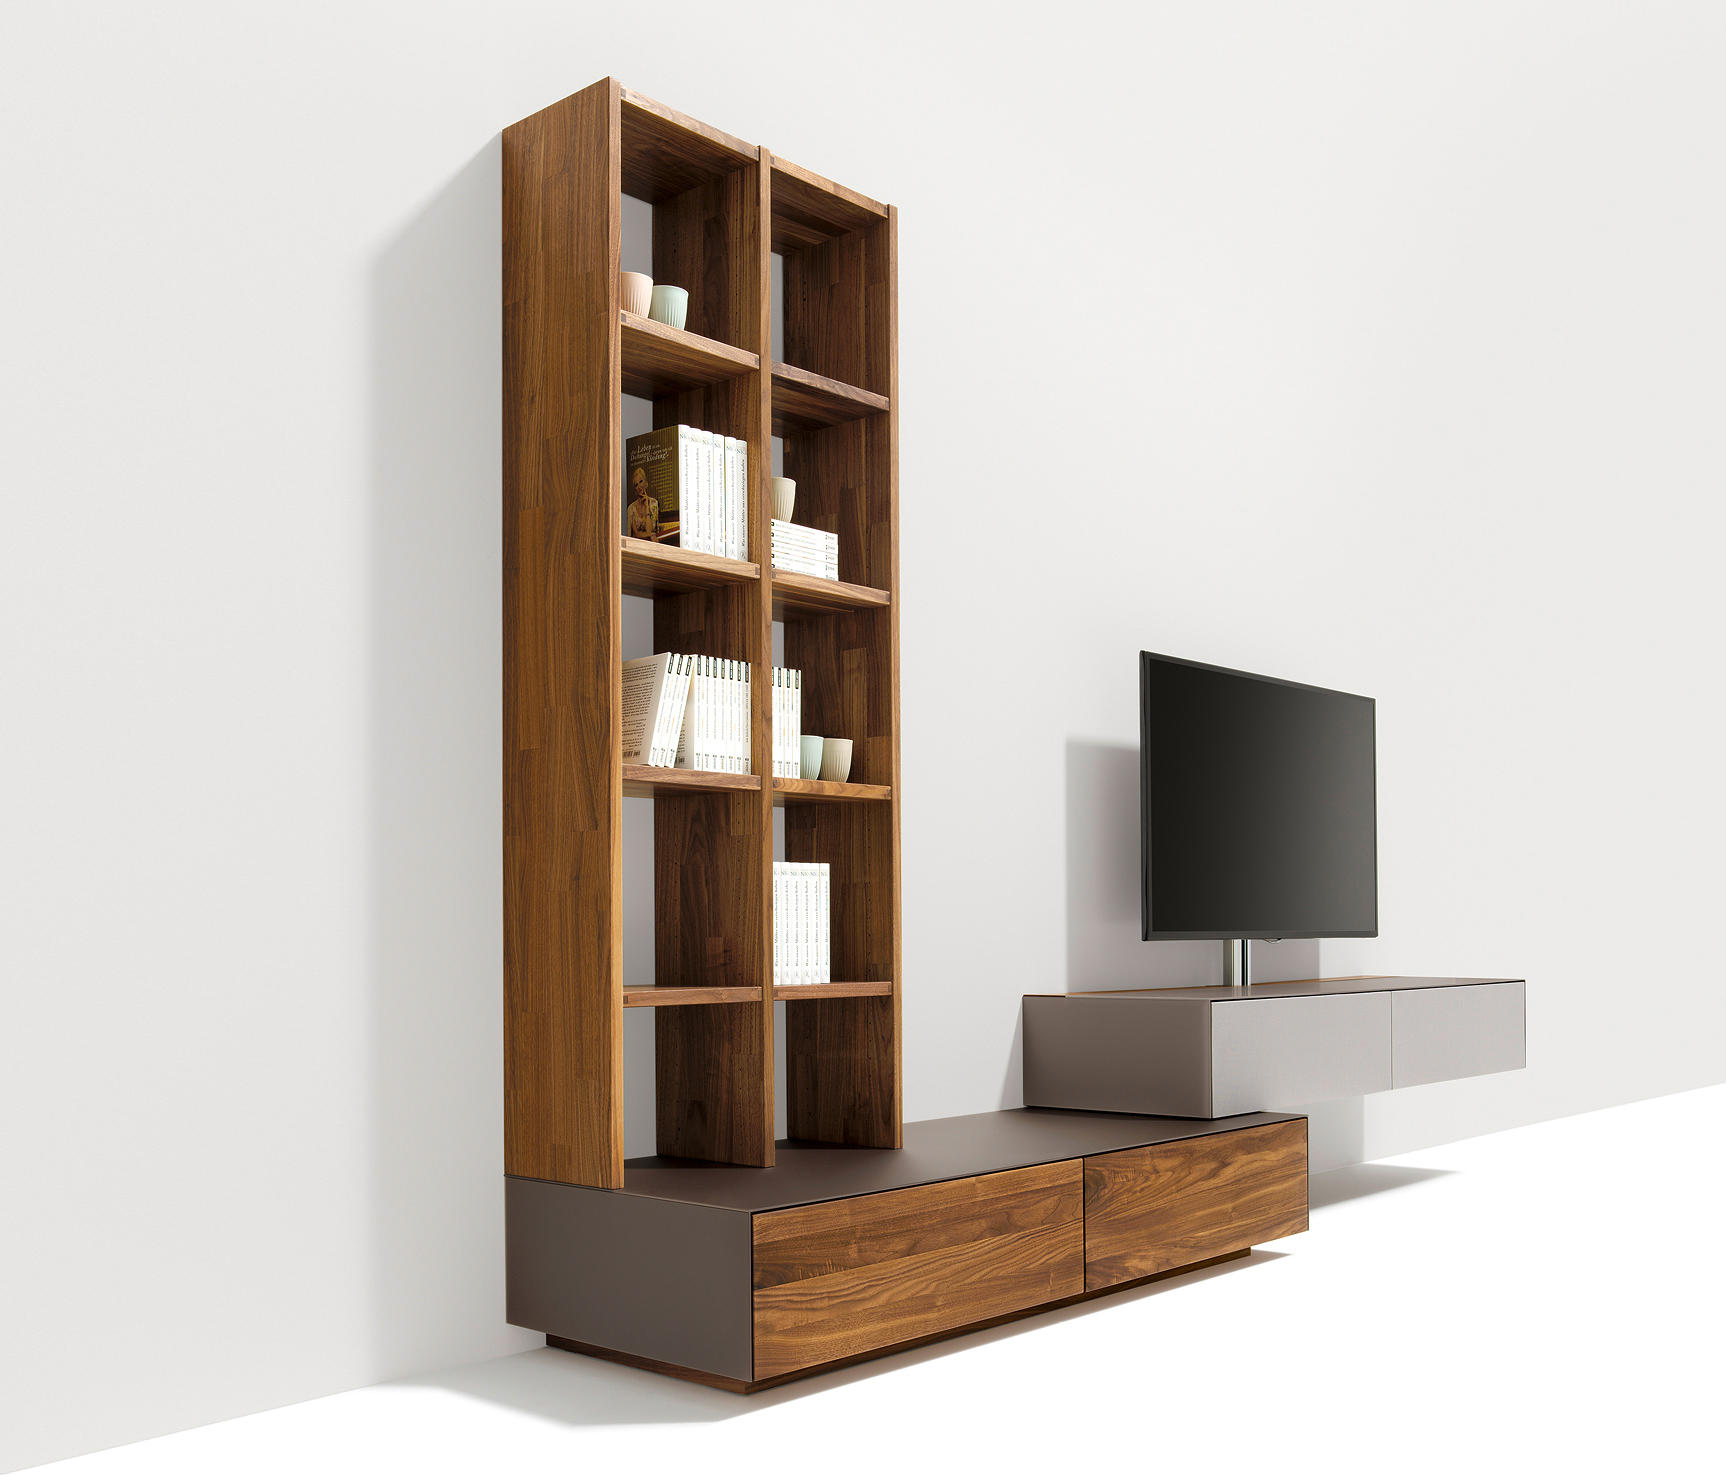 cubus pure wall storage system conjuntos de sal n de team 7 architonic. Black Bedroom Furniture Sets. Home Design Ideas